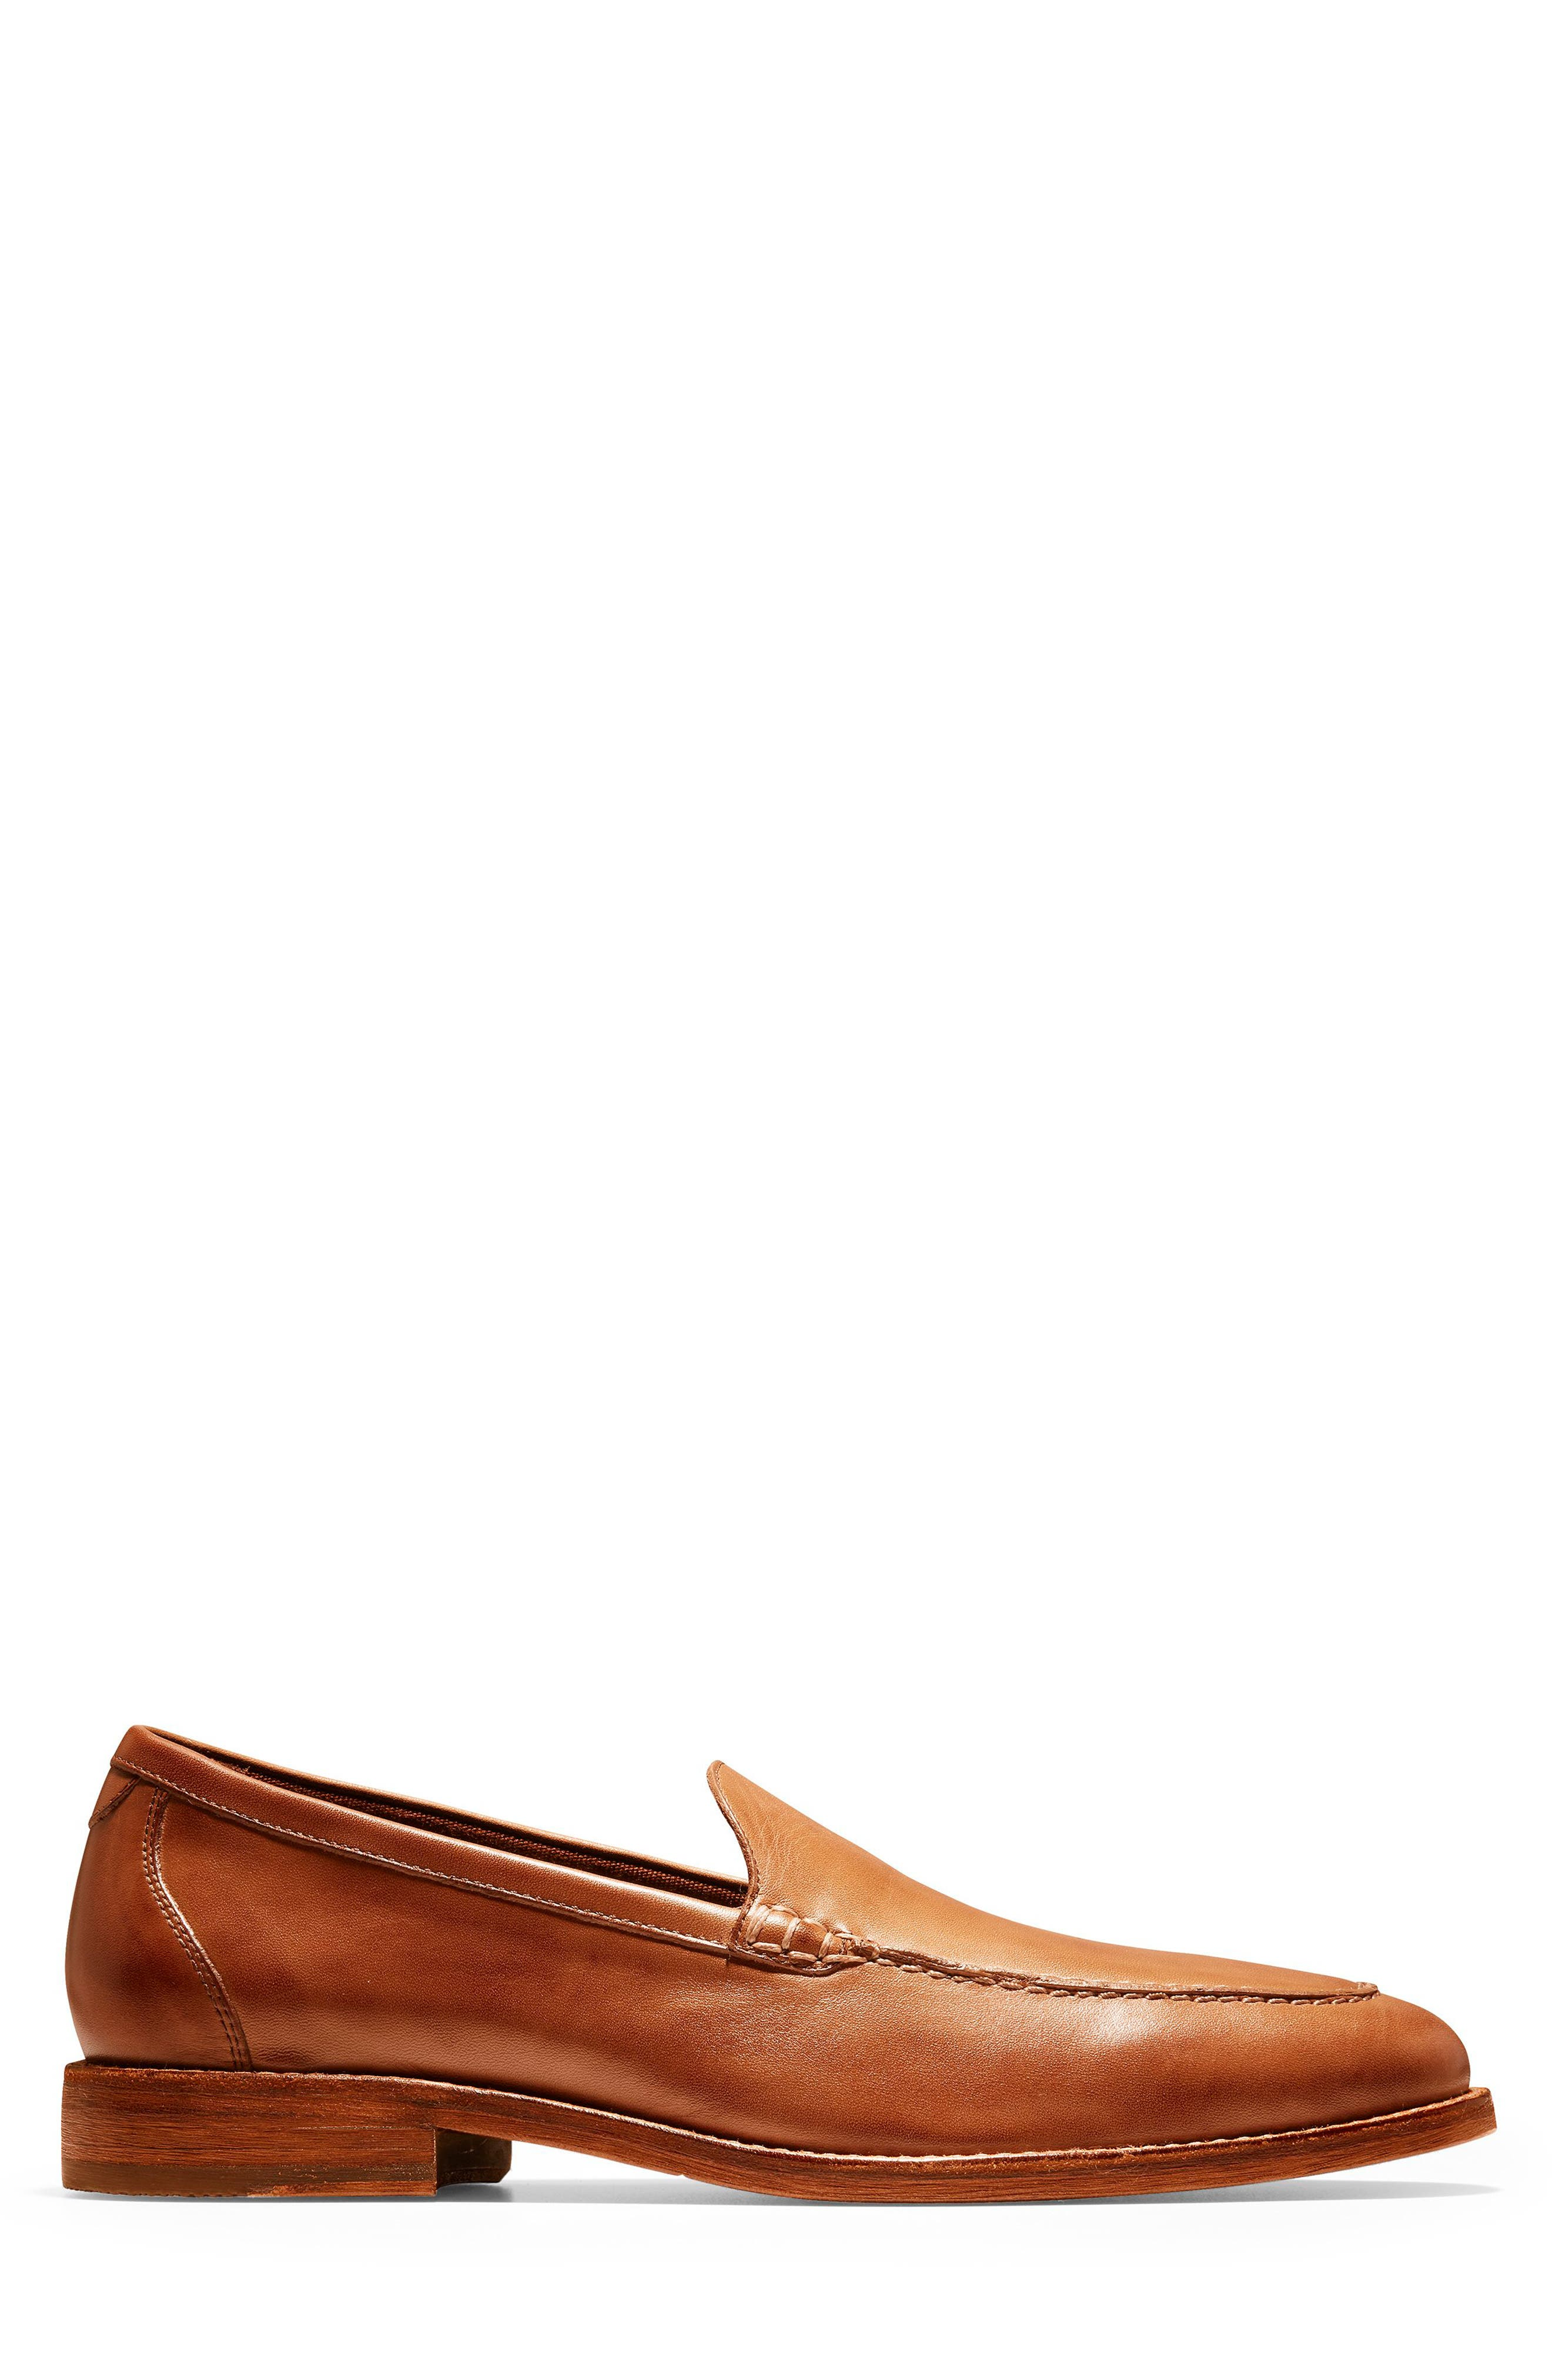 COLE HAAN, Feathercraft Grand Venetian Loafer, Alternate thumbnail 3, color, BRITISH TAN LEATHER